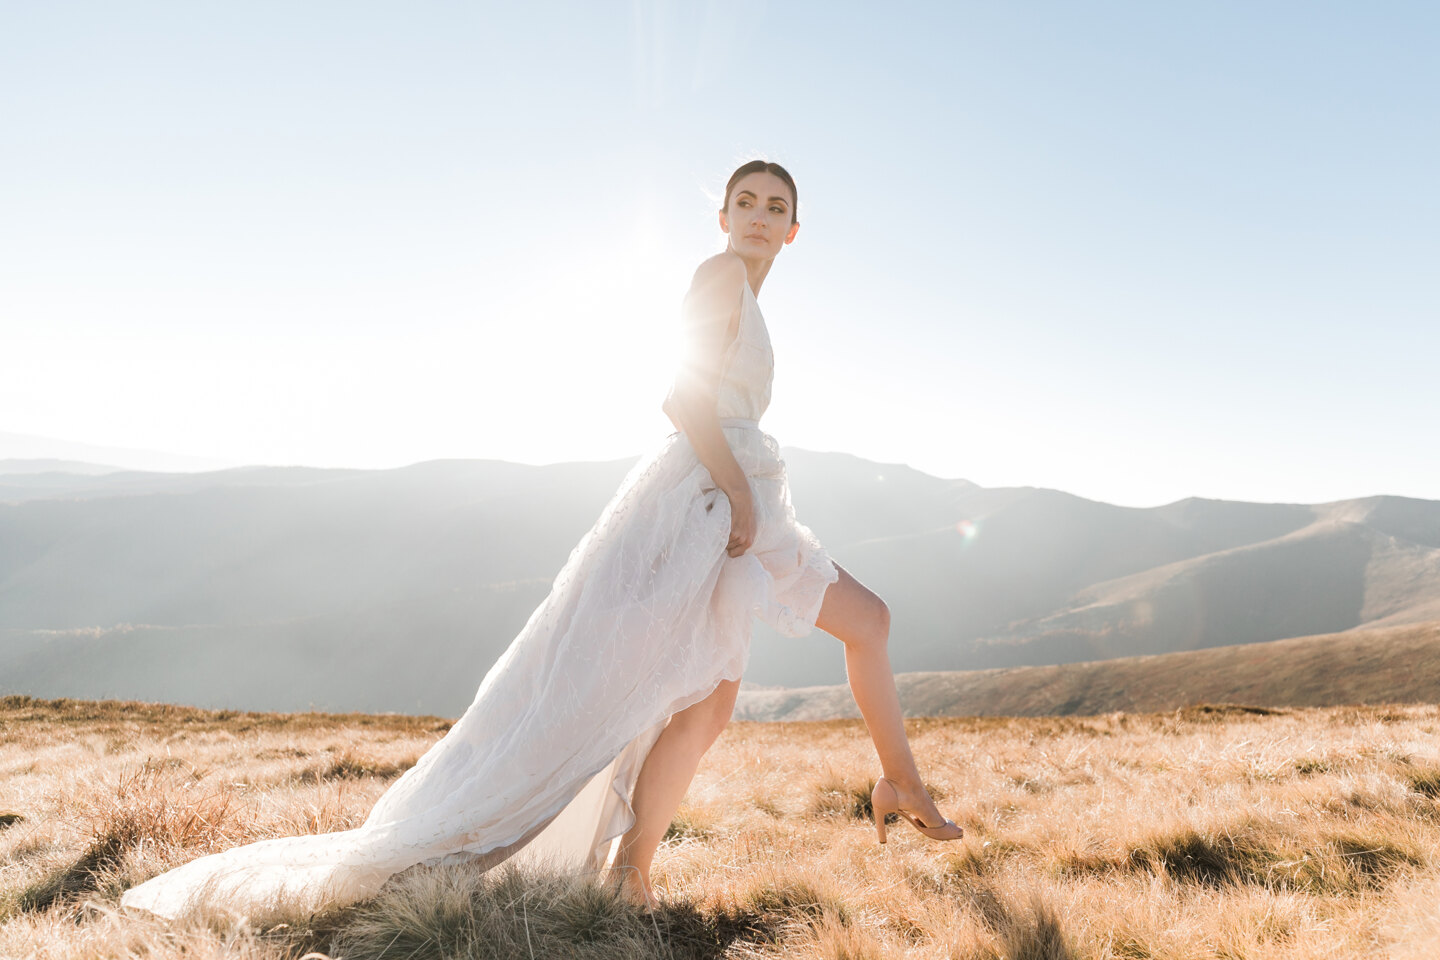 Wedding Photographer in Italy: The bride in a wedding dress on a background of mountains lit by the sun.